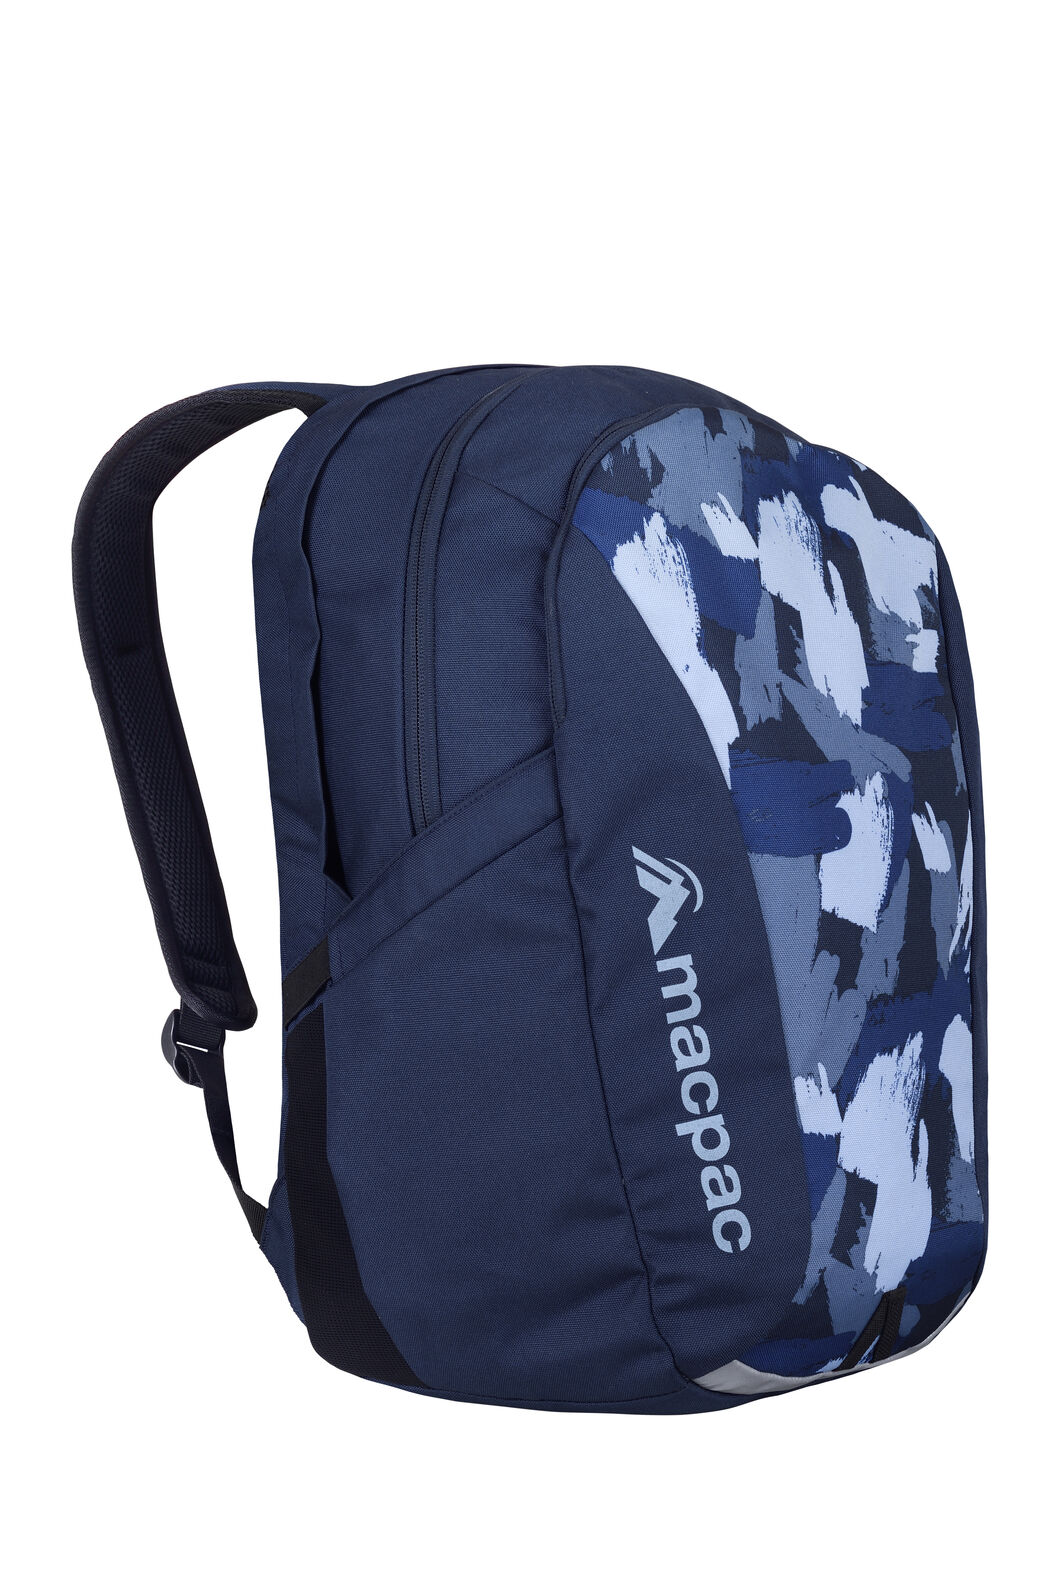 Macpac Kudos 23L Day Pack, Camo Paint, hi-res